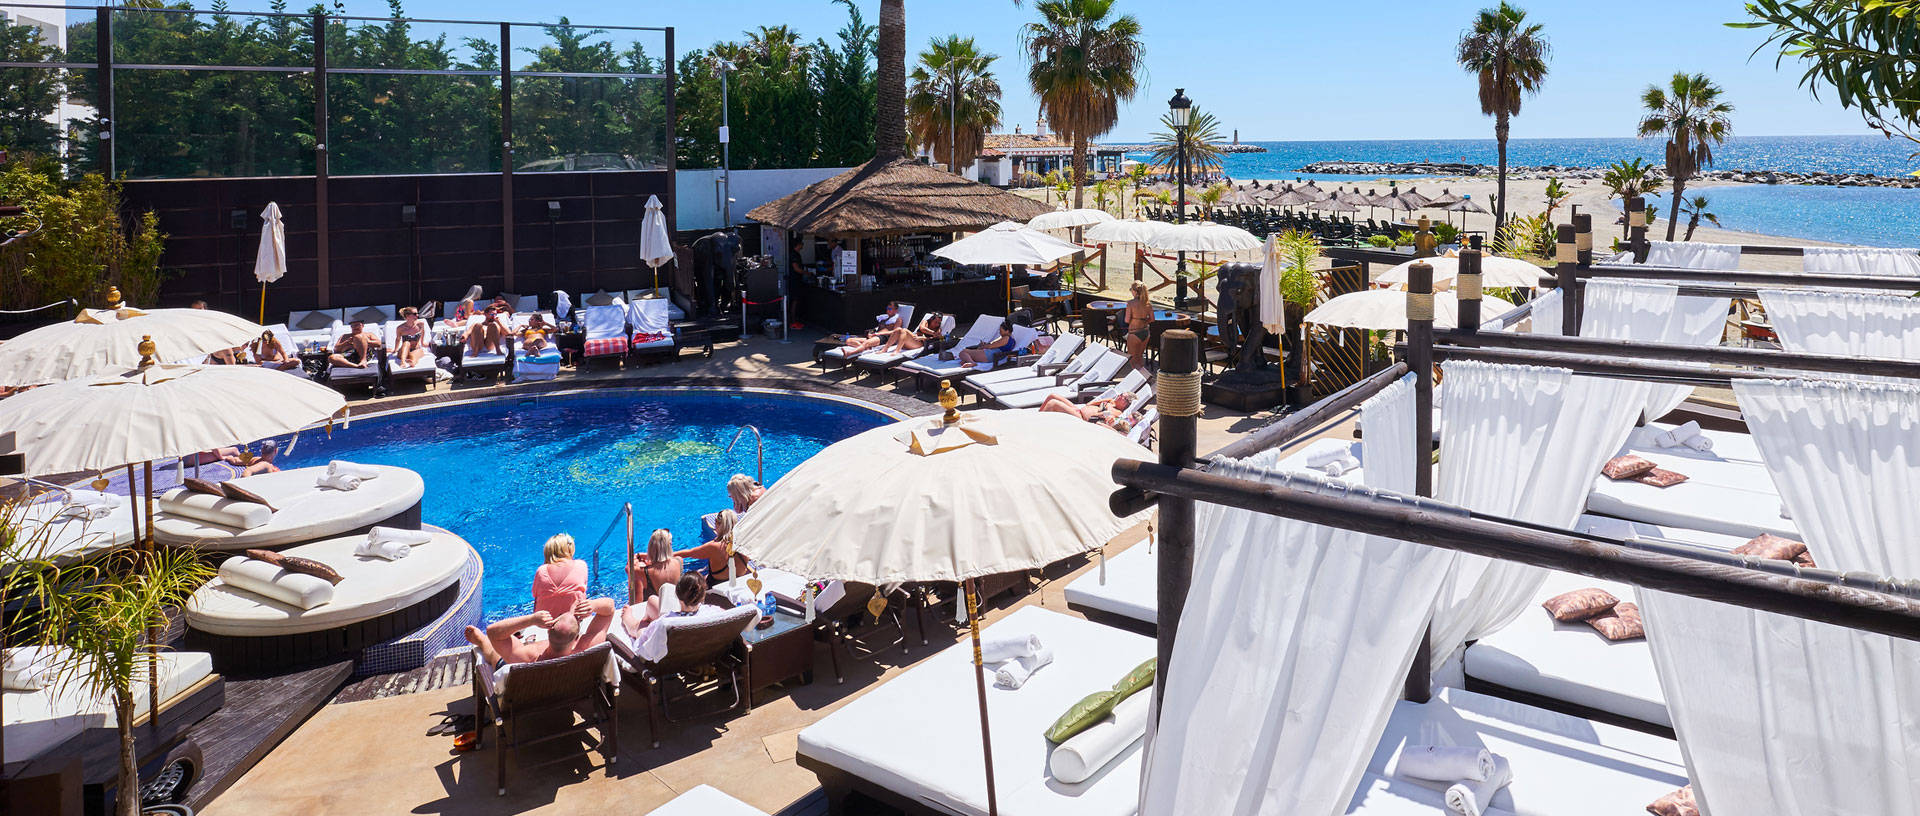 Pool parties at La Sala by the Sea in Puerto Banus